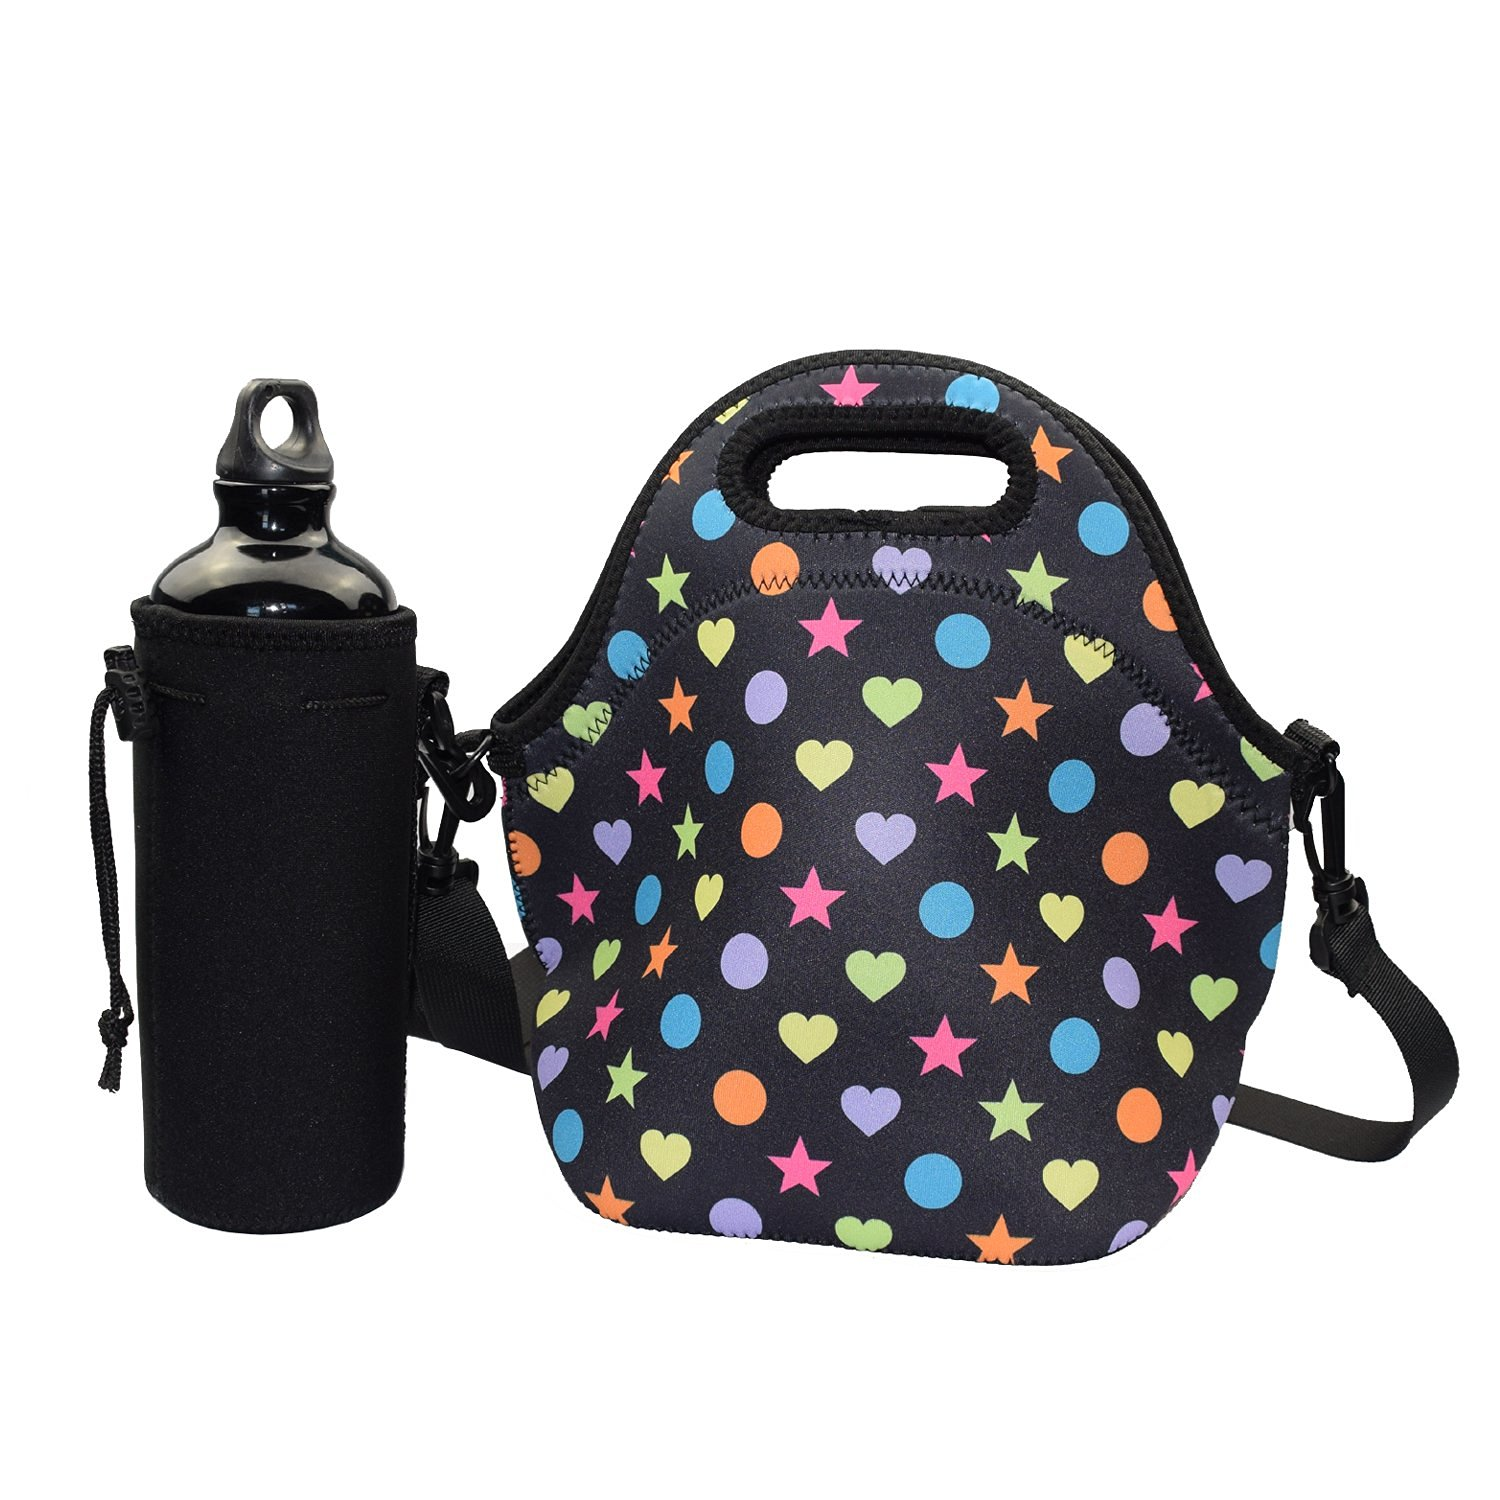 Lunch Bag with Water Bottle Holder - YAMAY® Neoprene Insulated Lunch Tote  Bag Cooler with e28b7b22e37e5